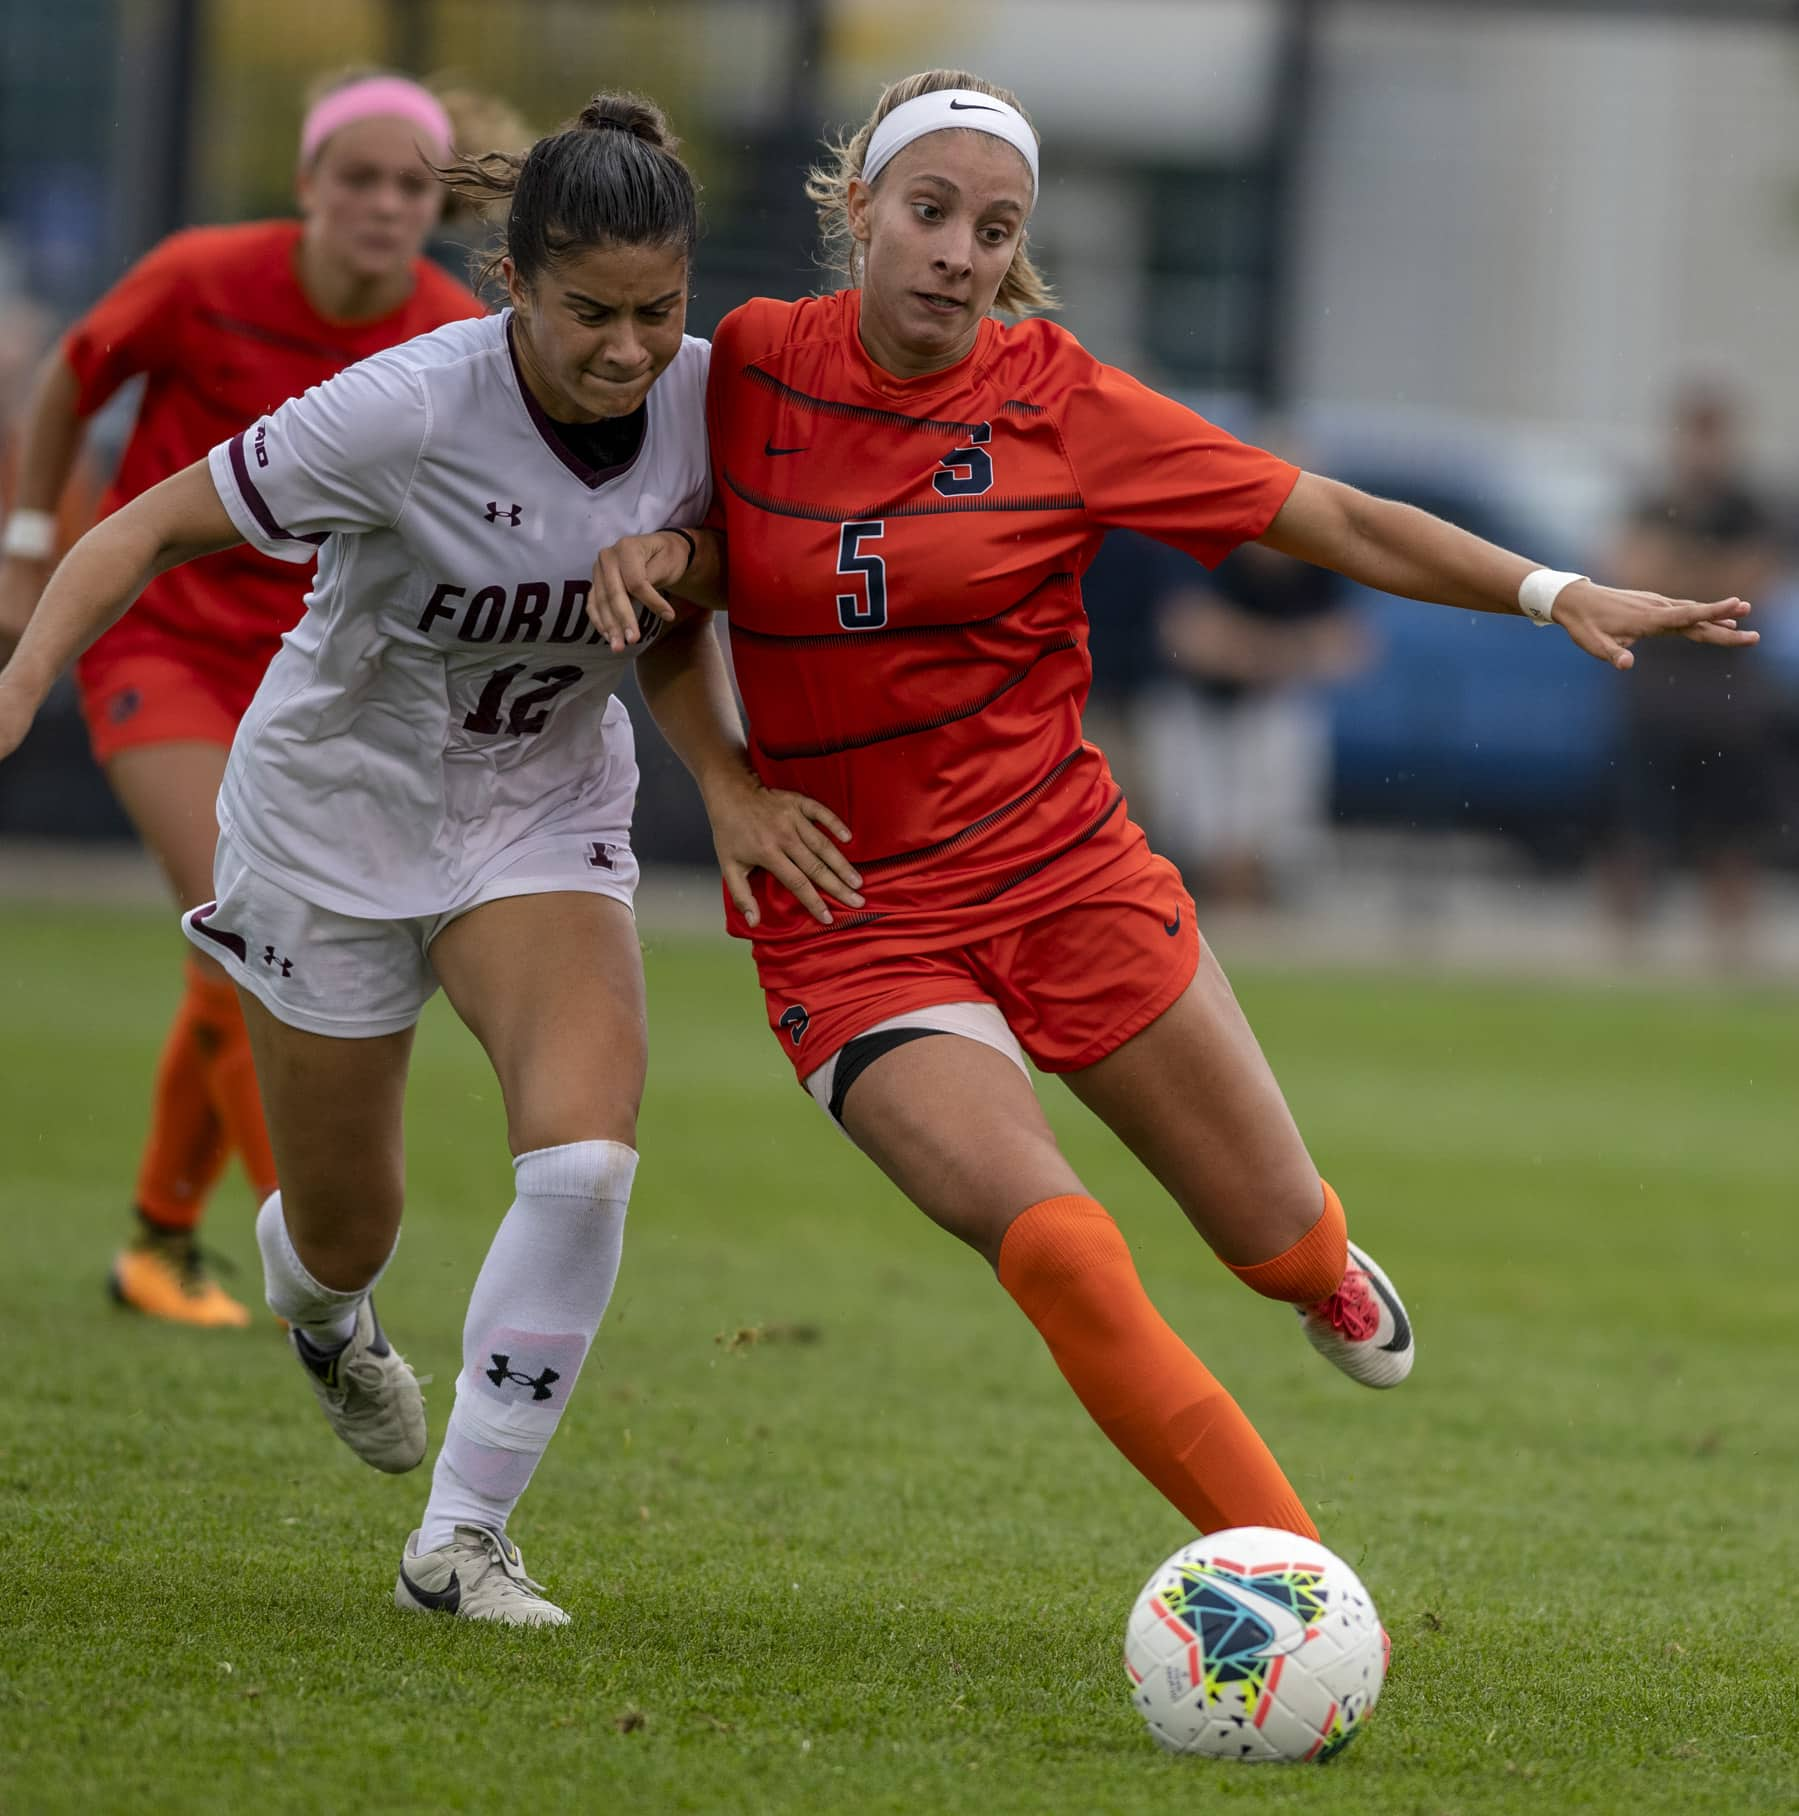 Saige Bingman (12) and Marisa Fischetti (5) fight for the ball during the game at the SU soccer stadium on Sept.15. Photo by Zoe Davis for the Newshouse.